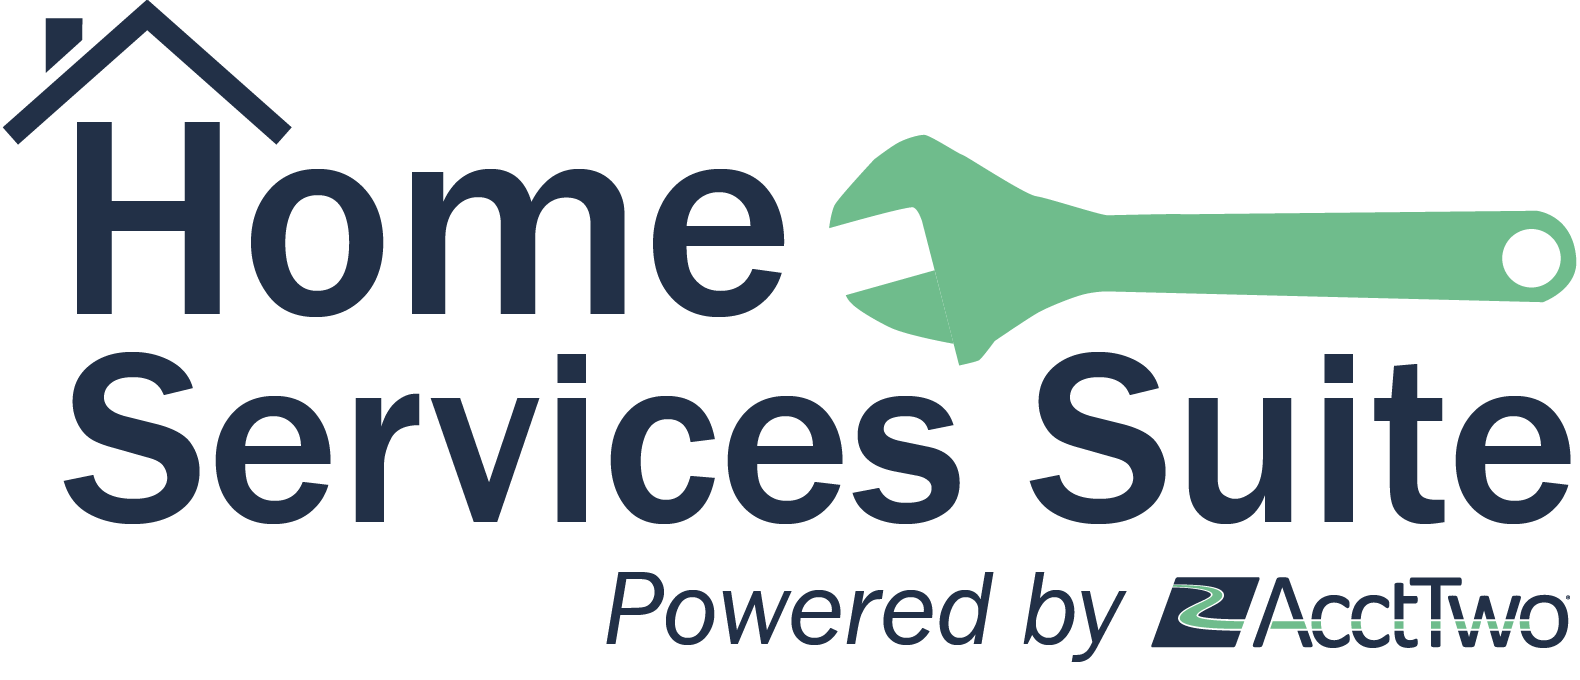 Home Services Fall 2021 Release Update